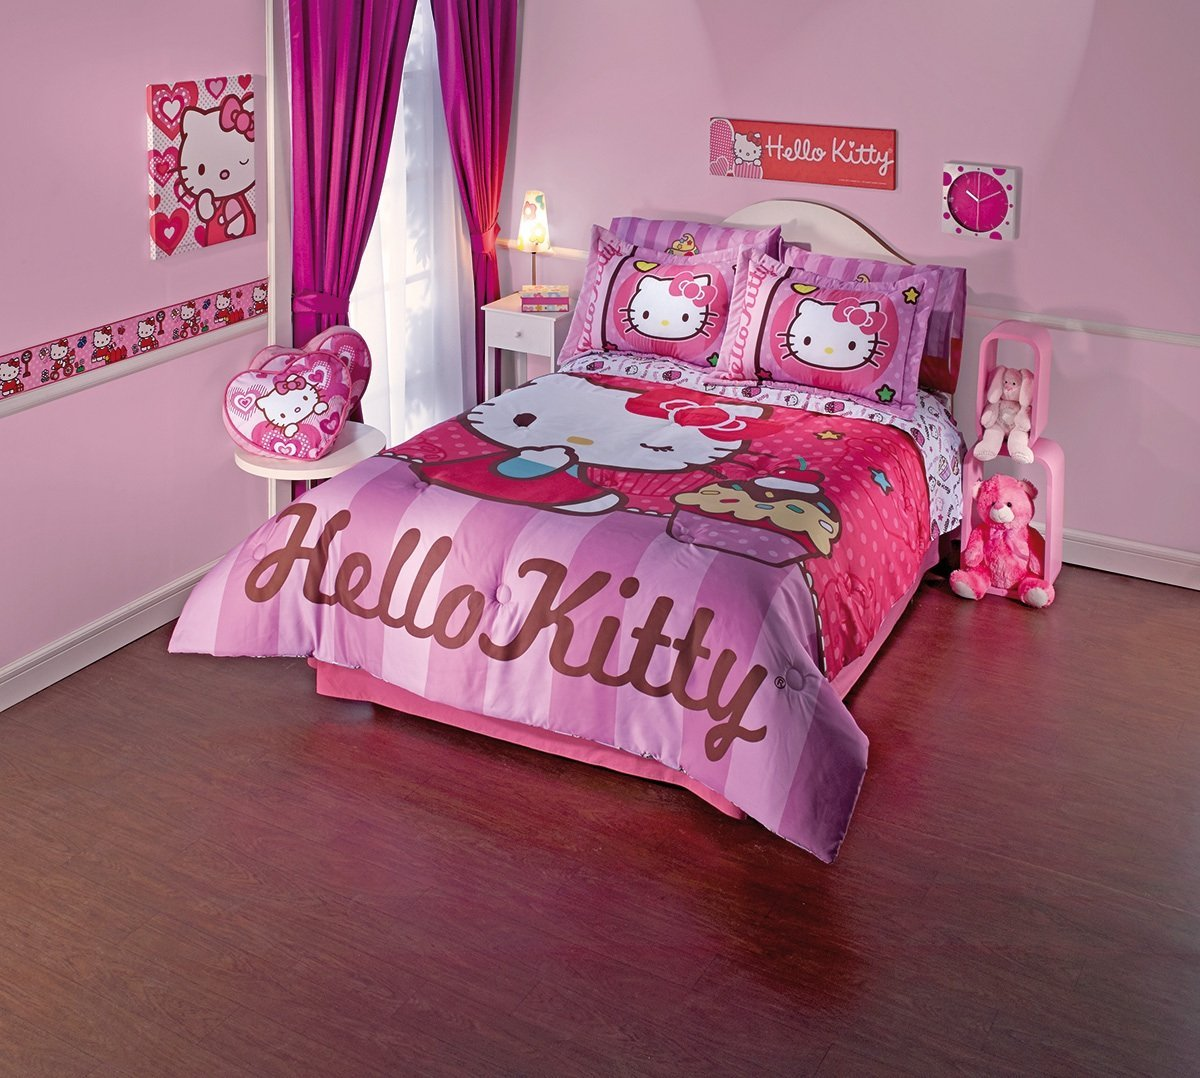 New Hello Kitty Comforter Sheet Set Full Size. Lovely Hello Kitty Bedding Sets   Home Designing